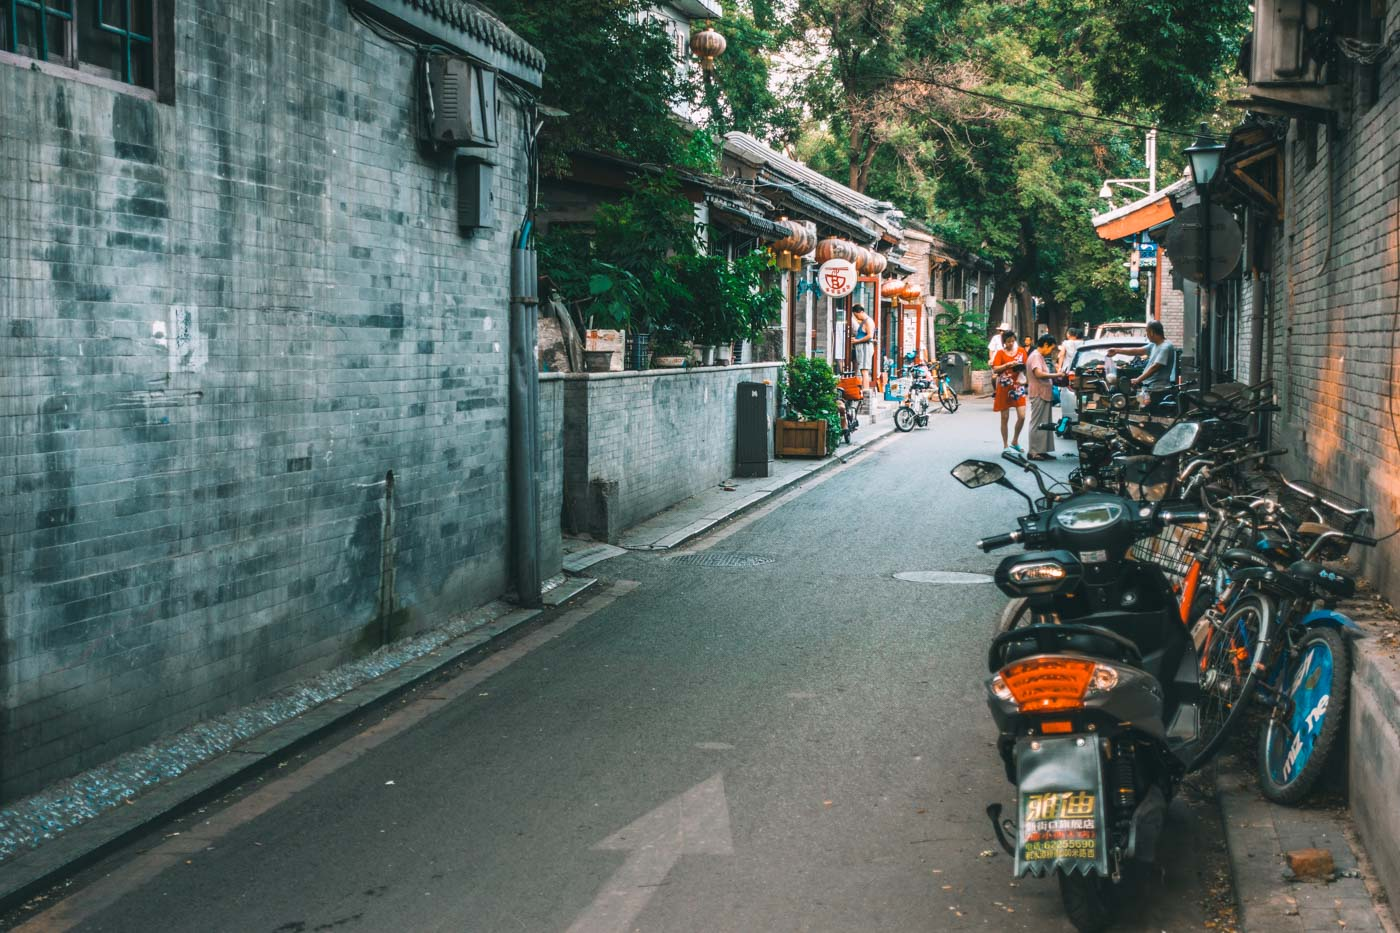 Public toilets an be found everywhere in China, including the hutongs (small residential alleyways)